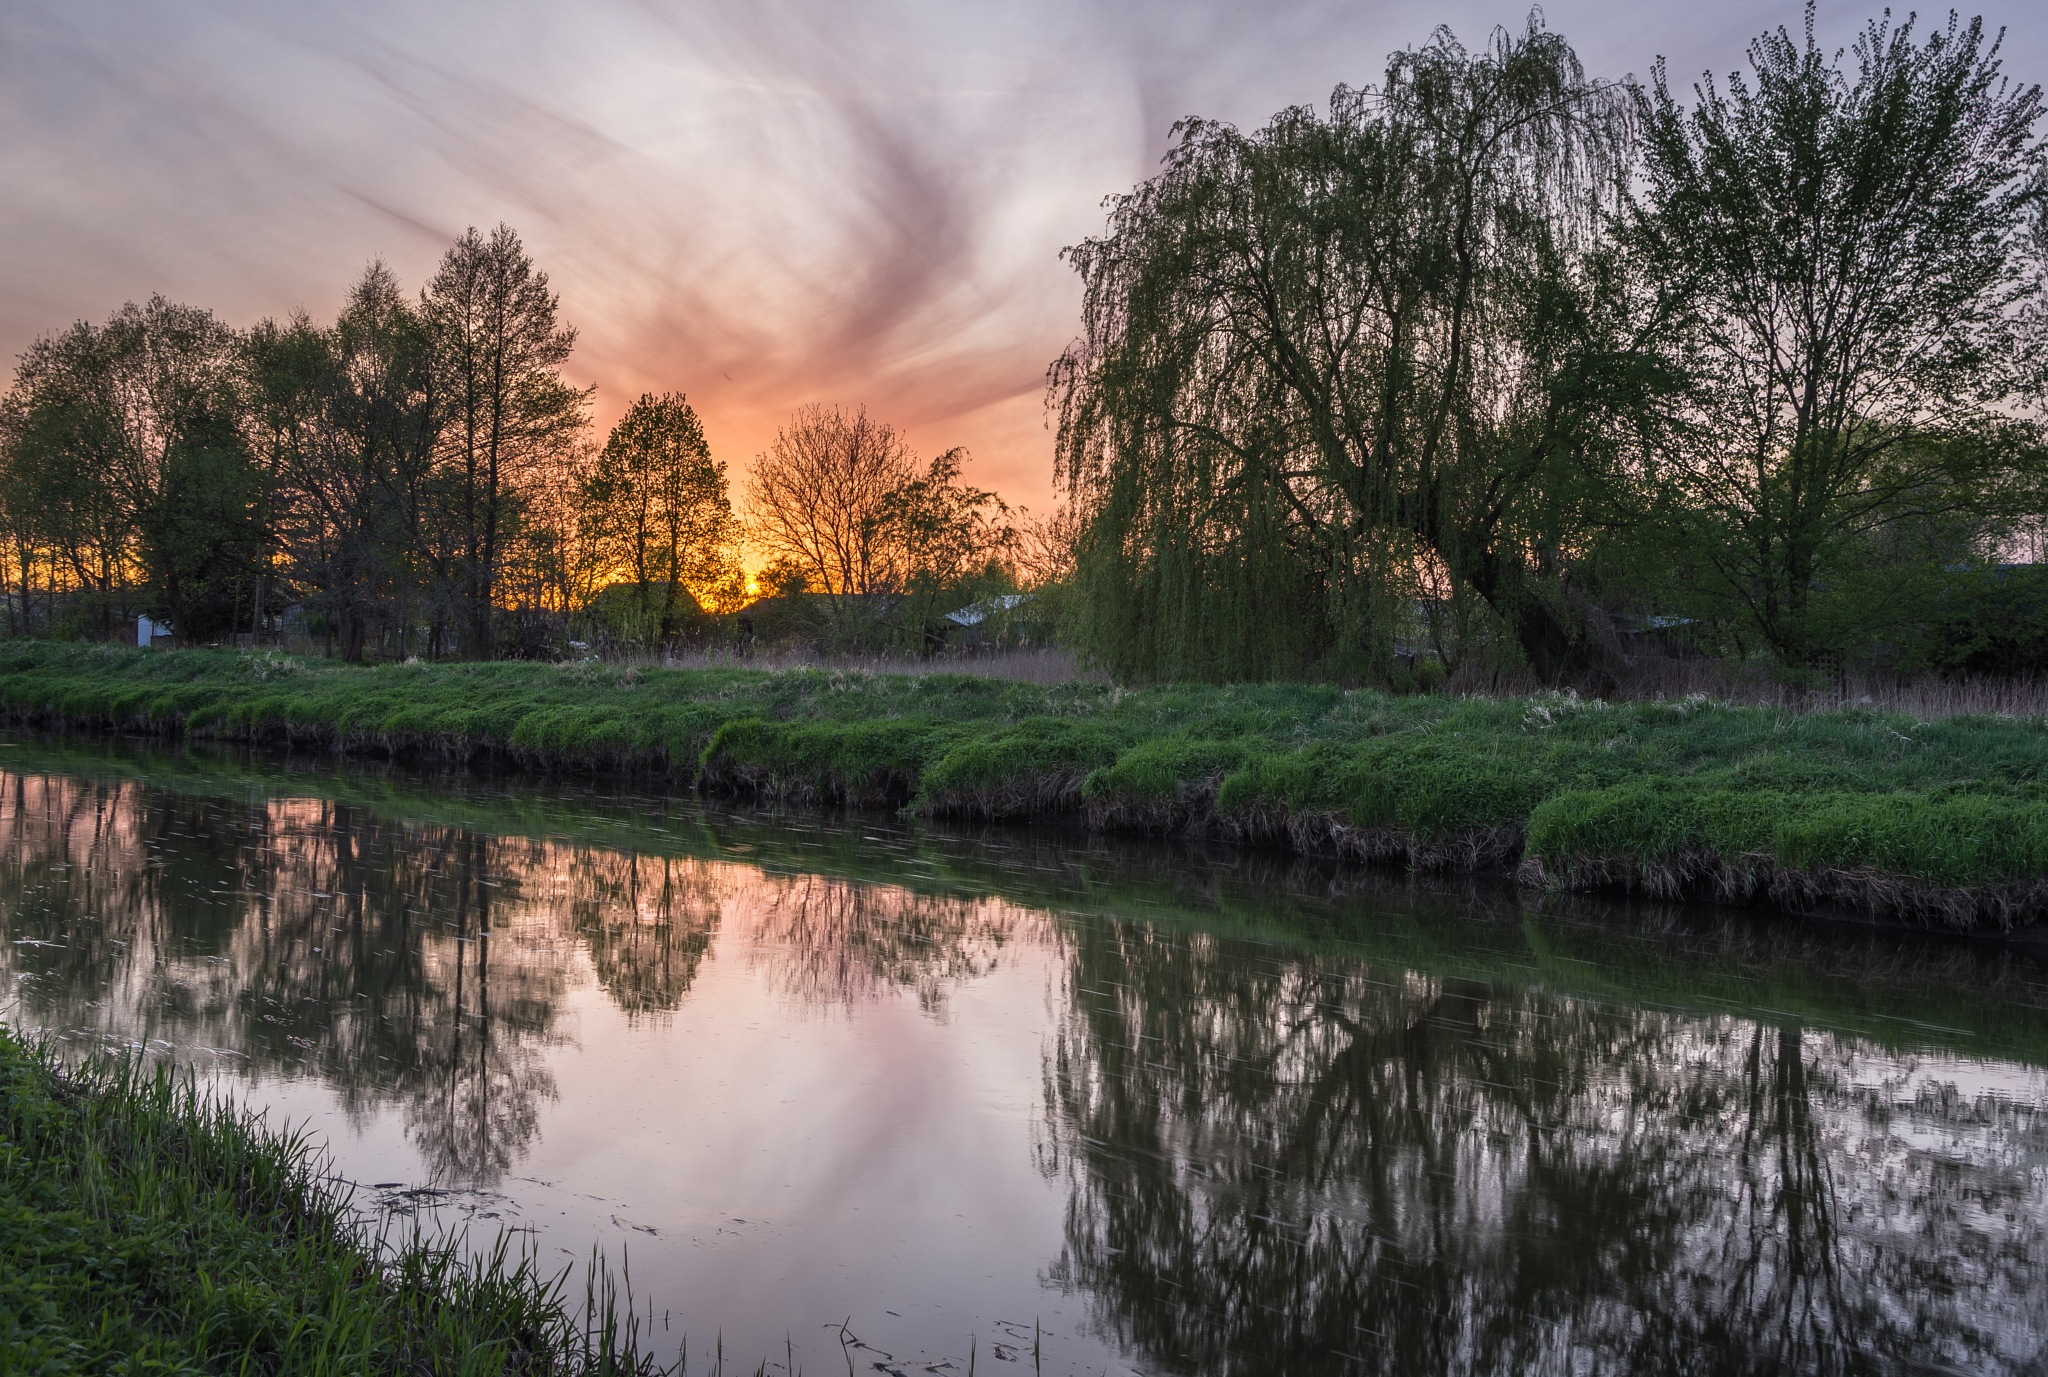 sunset over the Krzna river by Eagle70